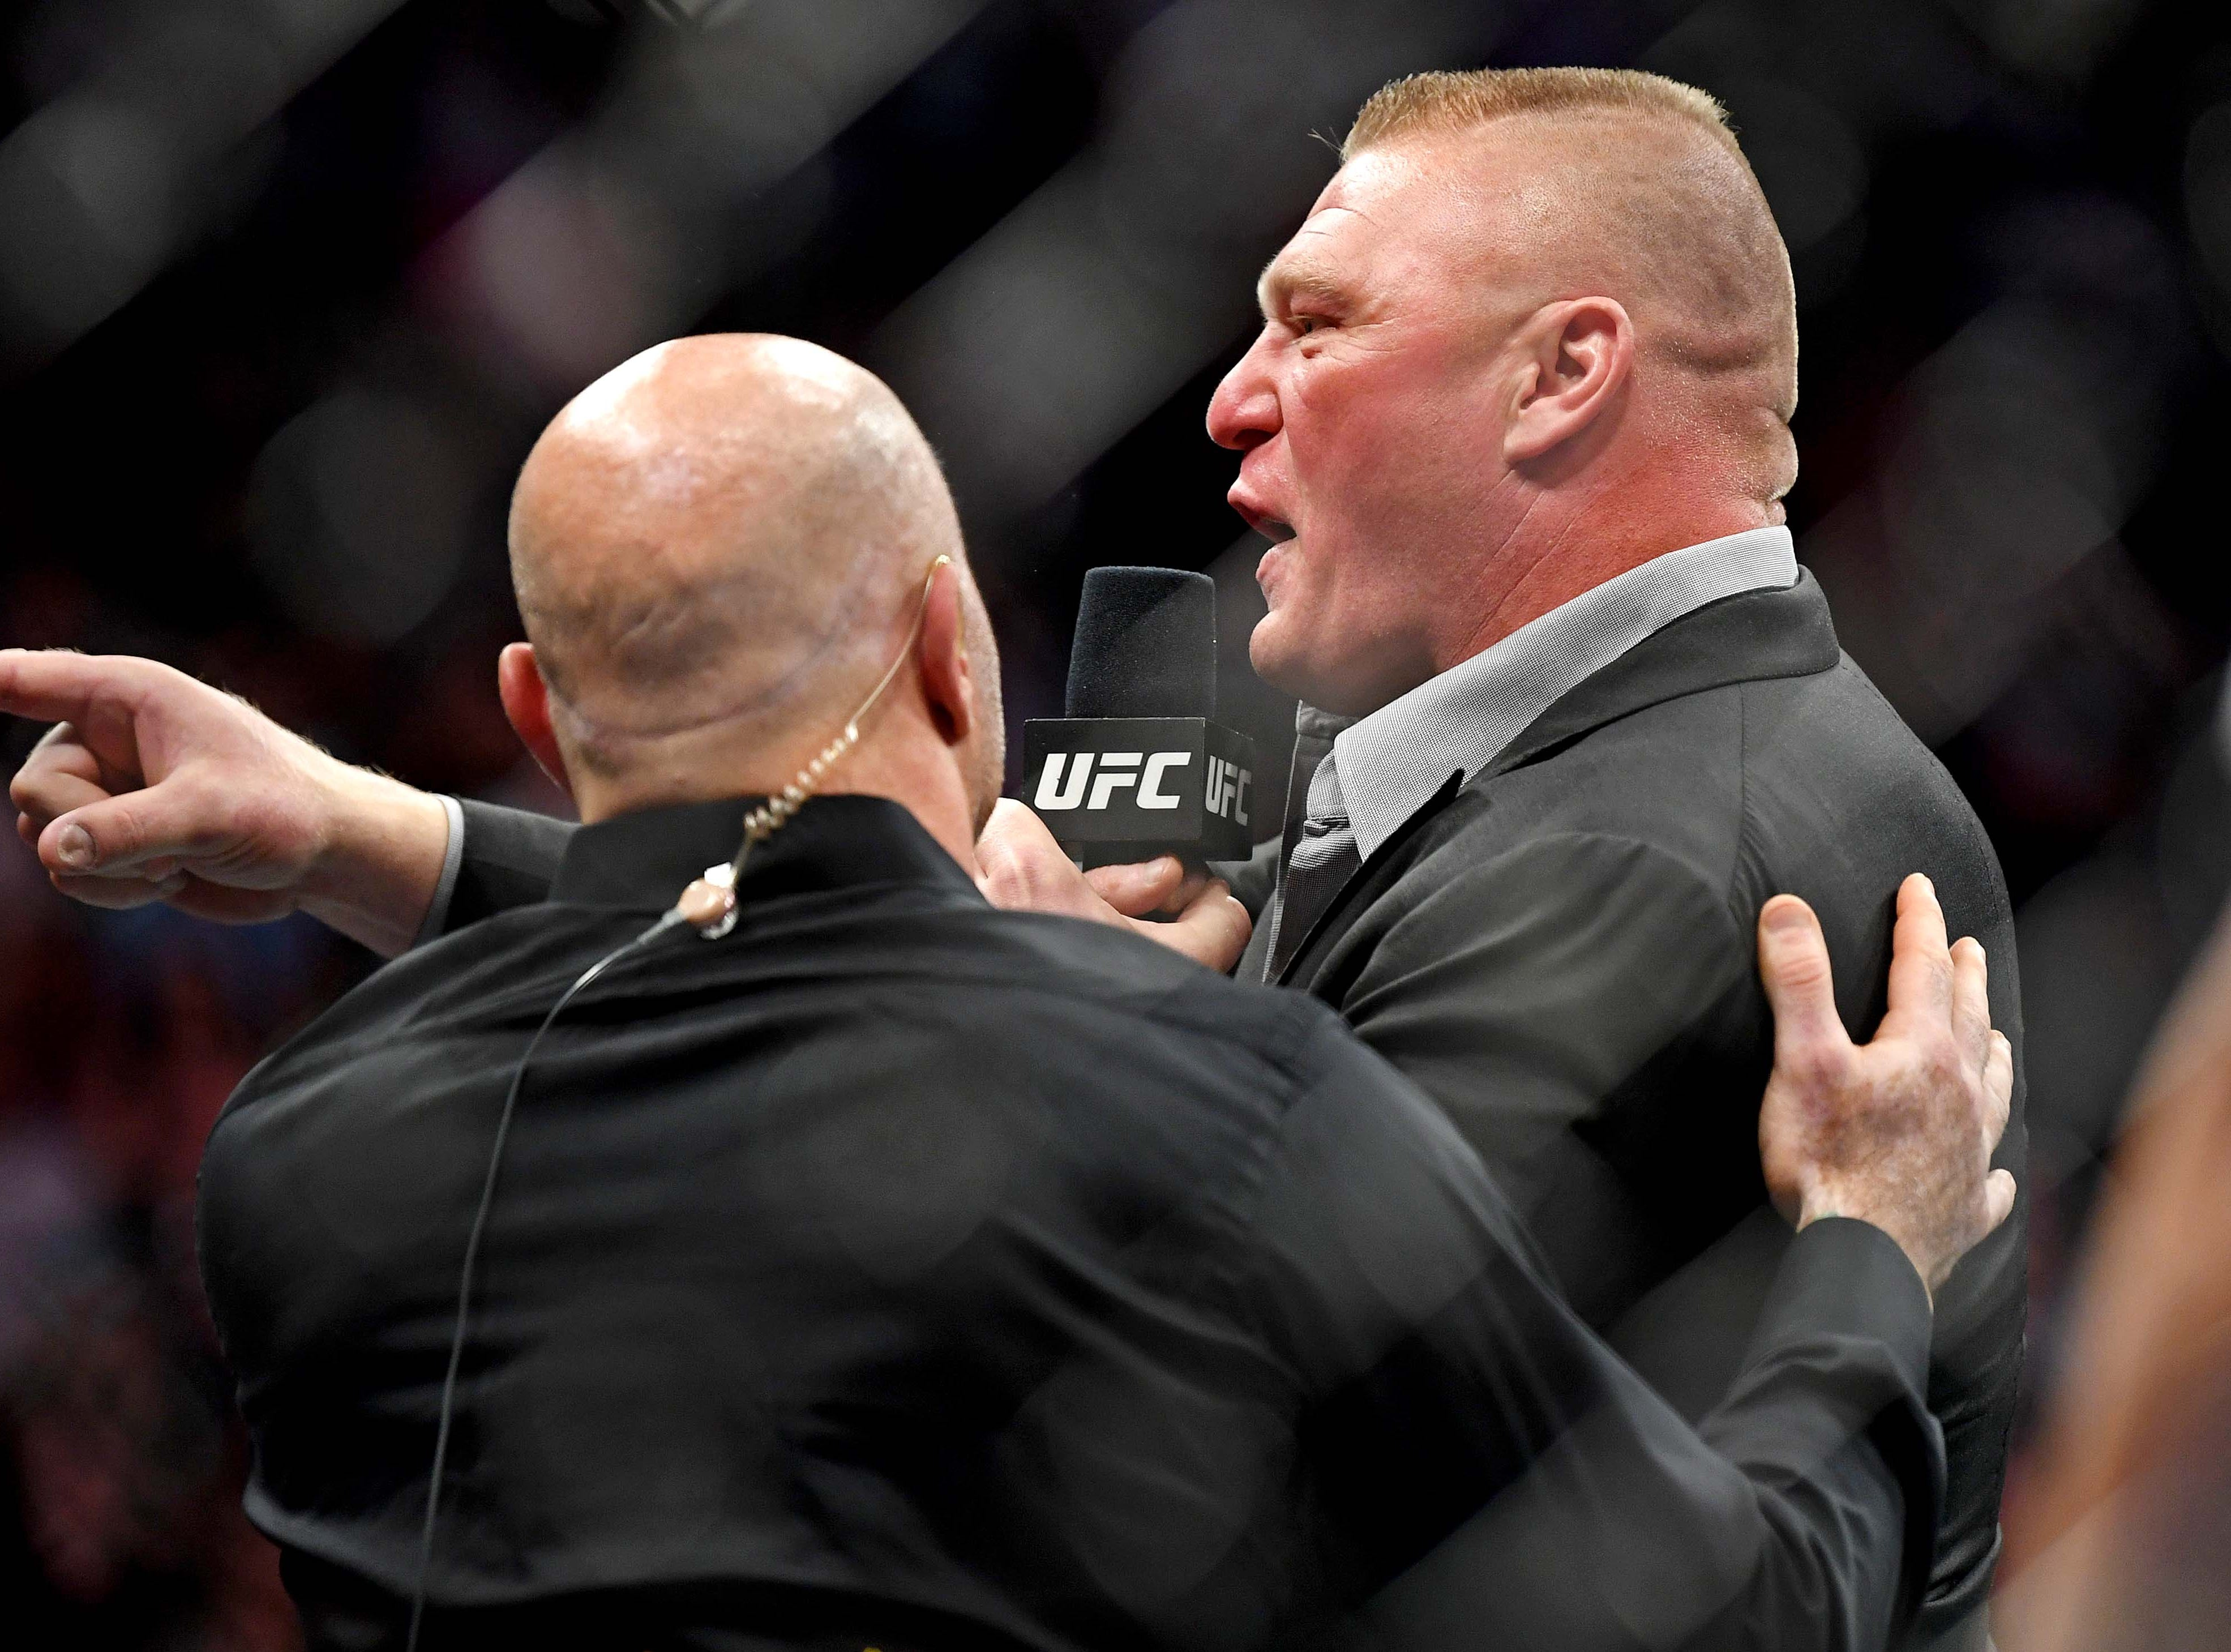 July 7: Brock Lesnar enters the octagon after Daniel Cormier beat Stipe Miocic during UFC 226 at T-Mobile Arena.